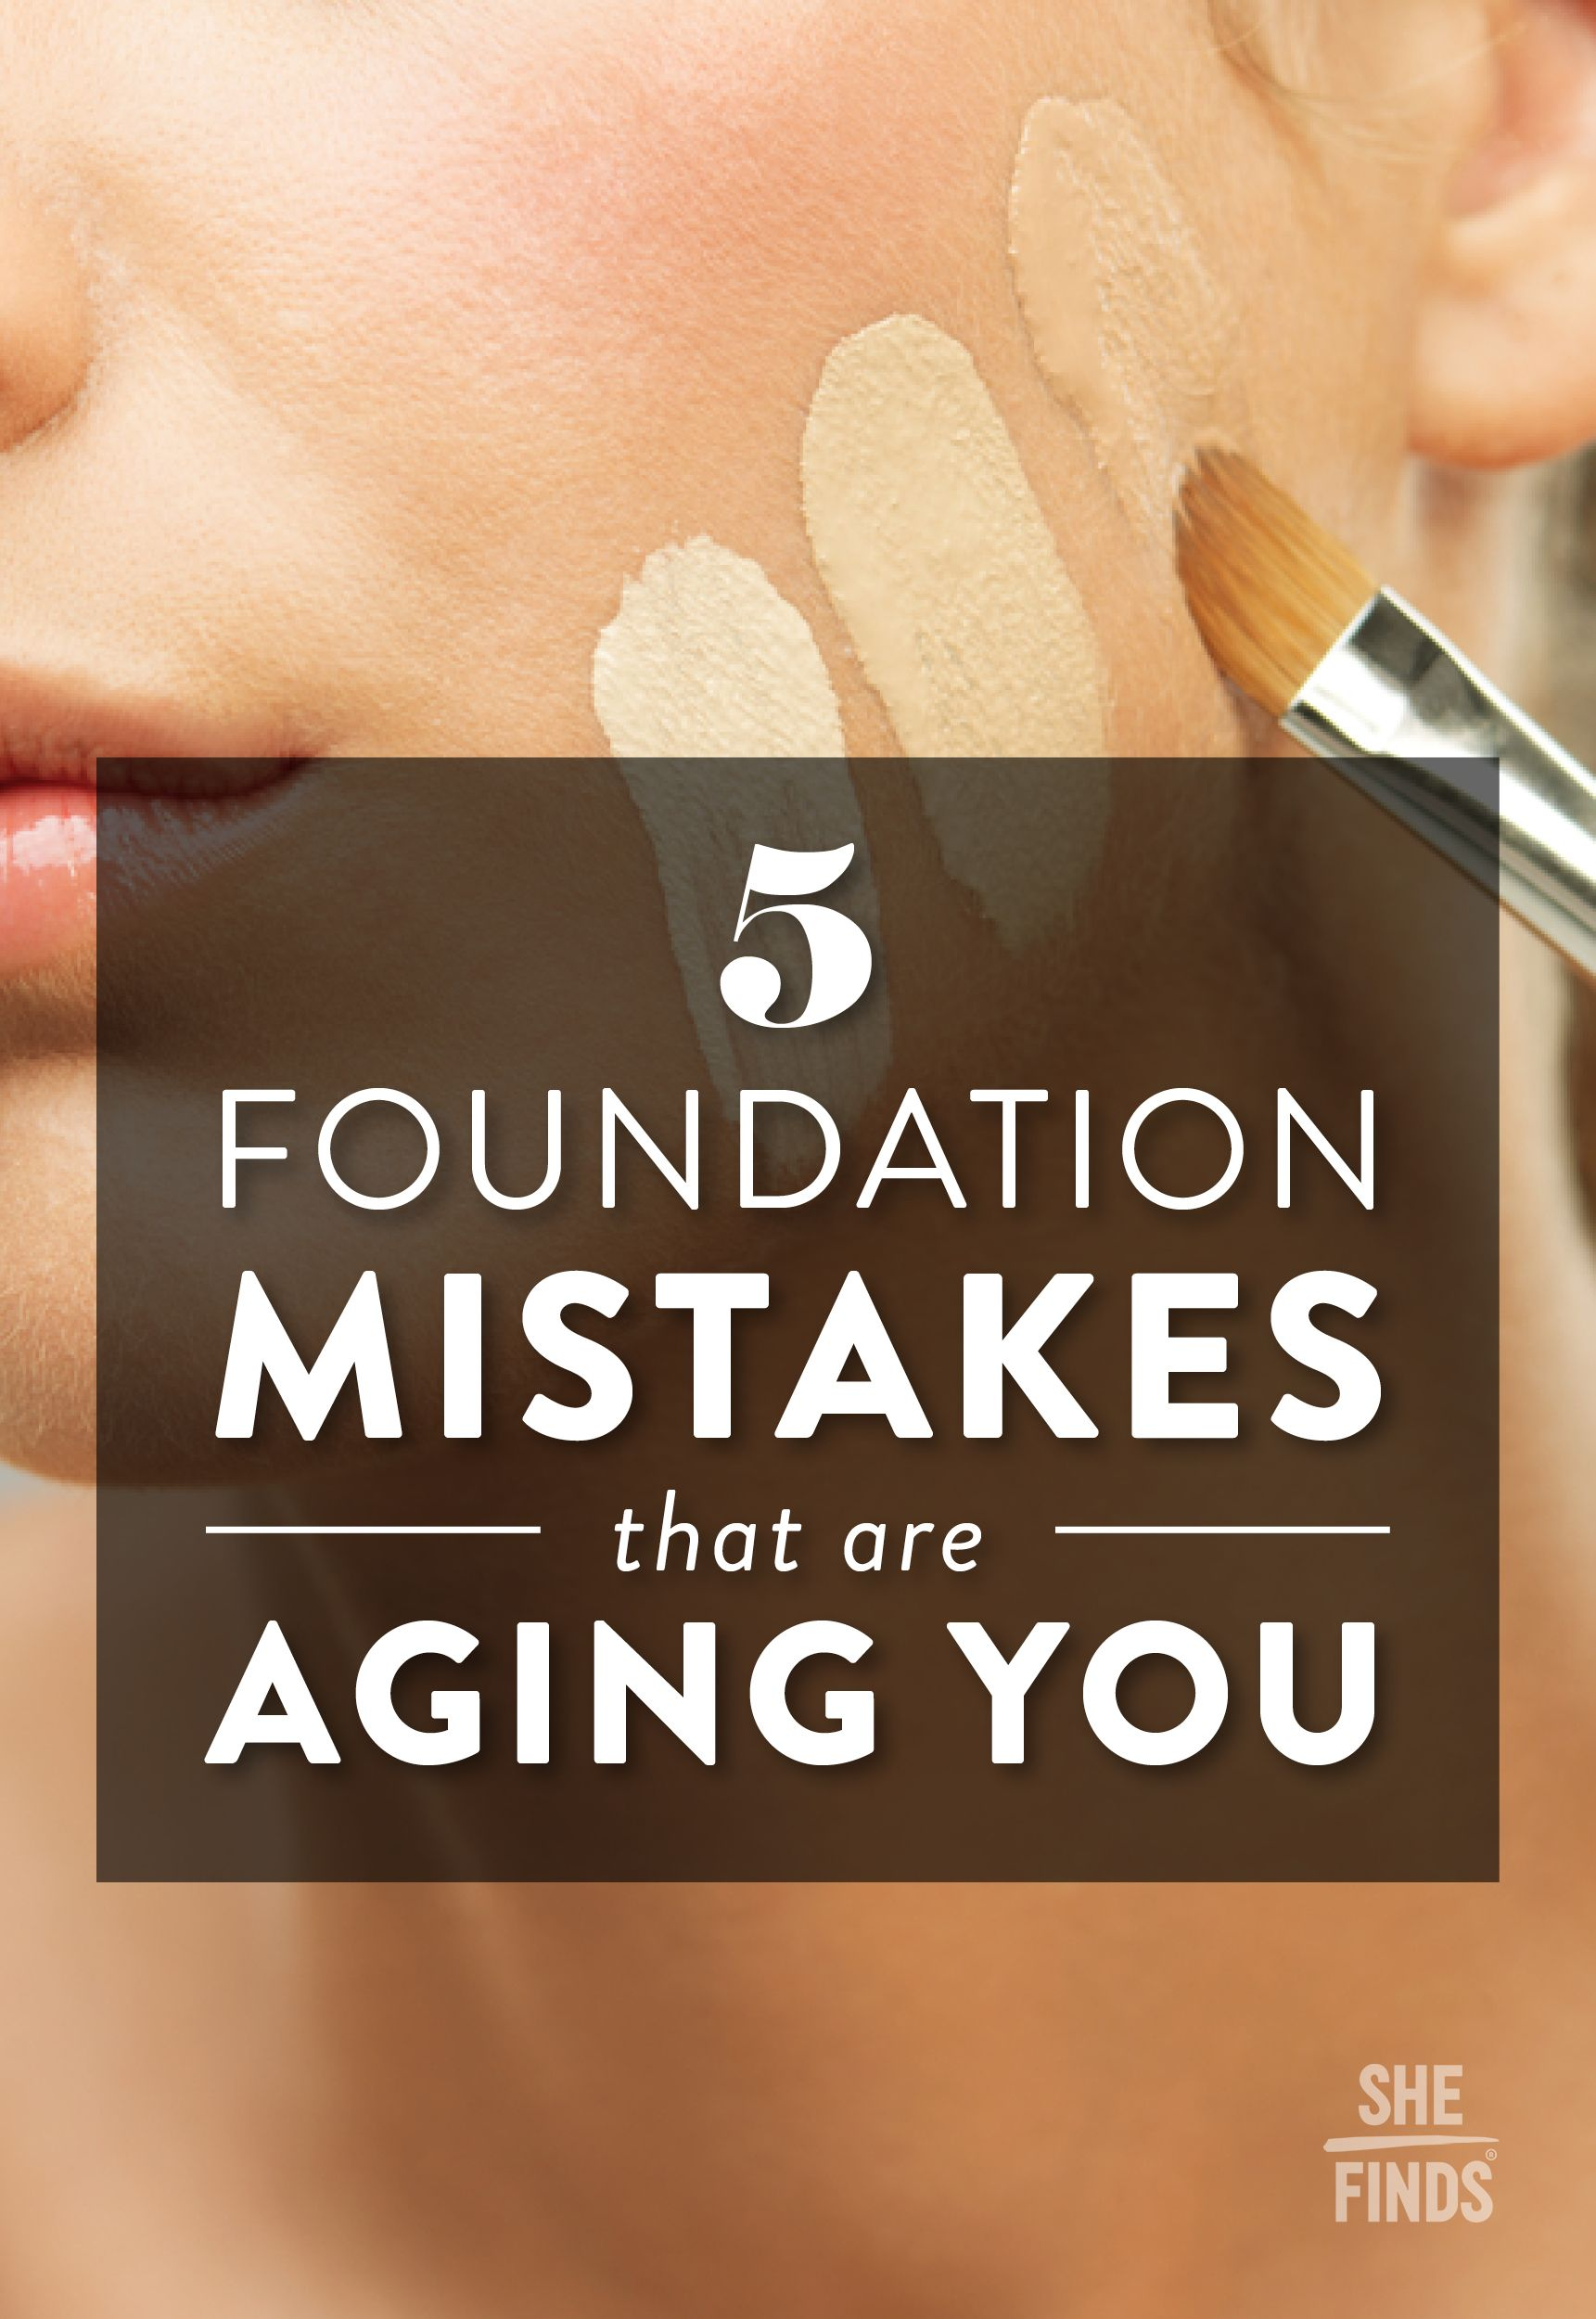 Pin by Dixie Dahle on Makeup in 2020 Makeup tips over 50